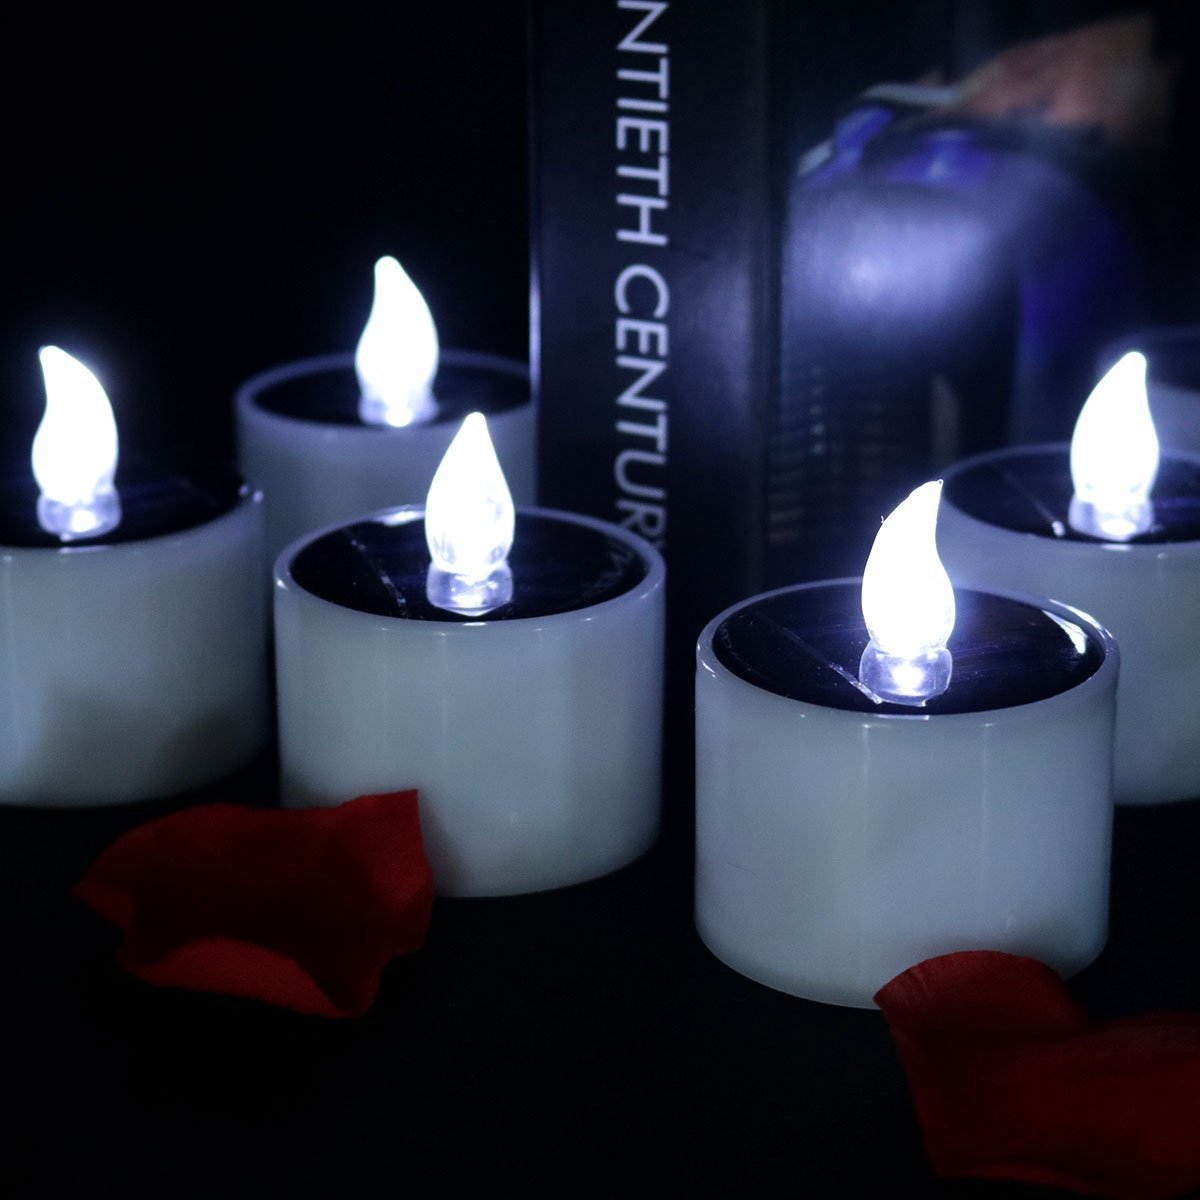 CTKcom 4 Pcs LED Solar Lights Solar Power LED light Candle Electric Lights Cool White Flickering Flameless LED Light Candle Lamp Nightlight for Home Outdoor Camping Emergency Party Birthday Wedding